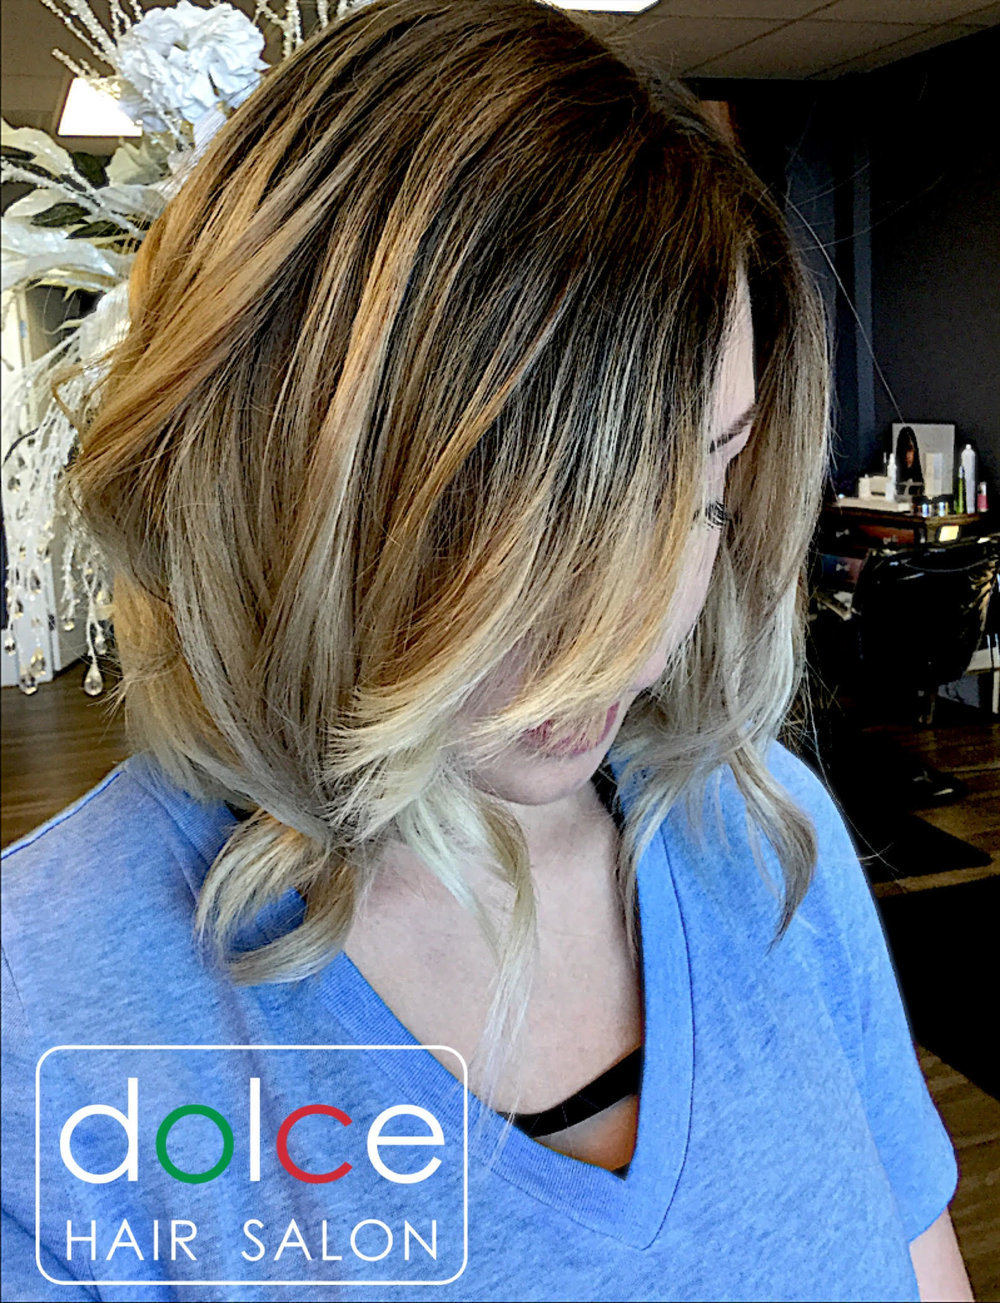 Dolce Hair Salon Pictures Pics 1.jpg